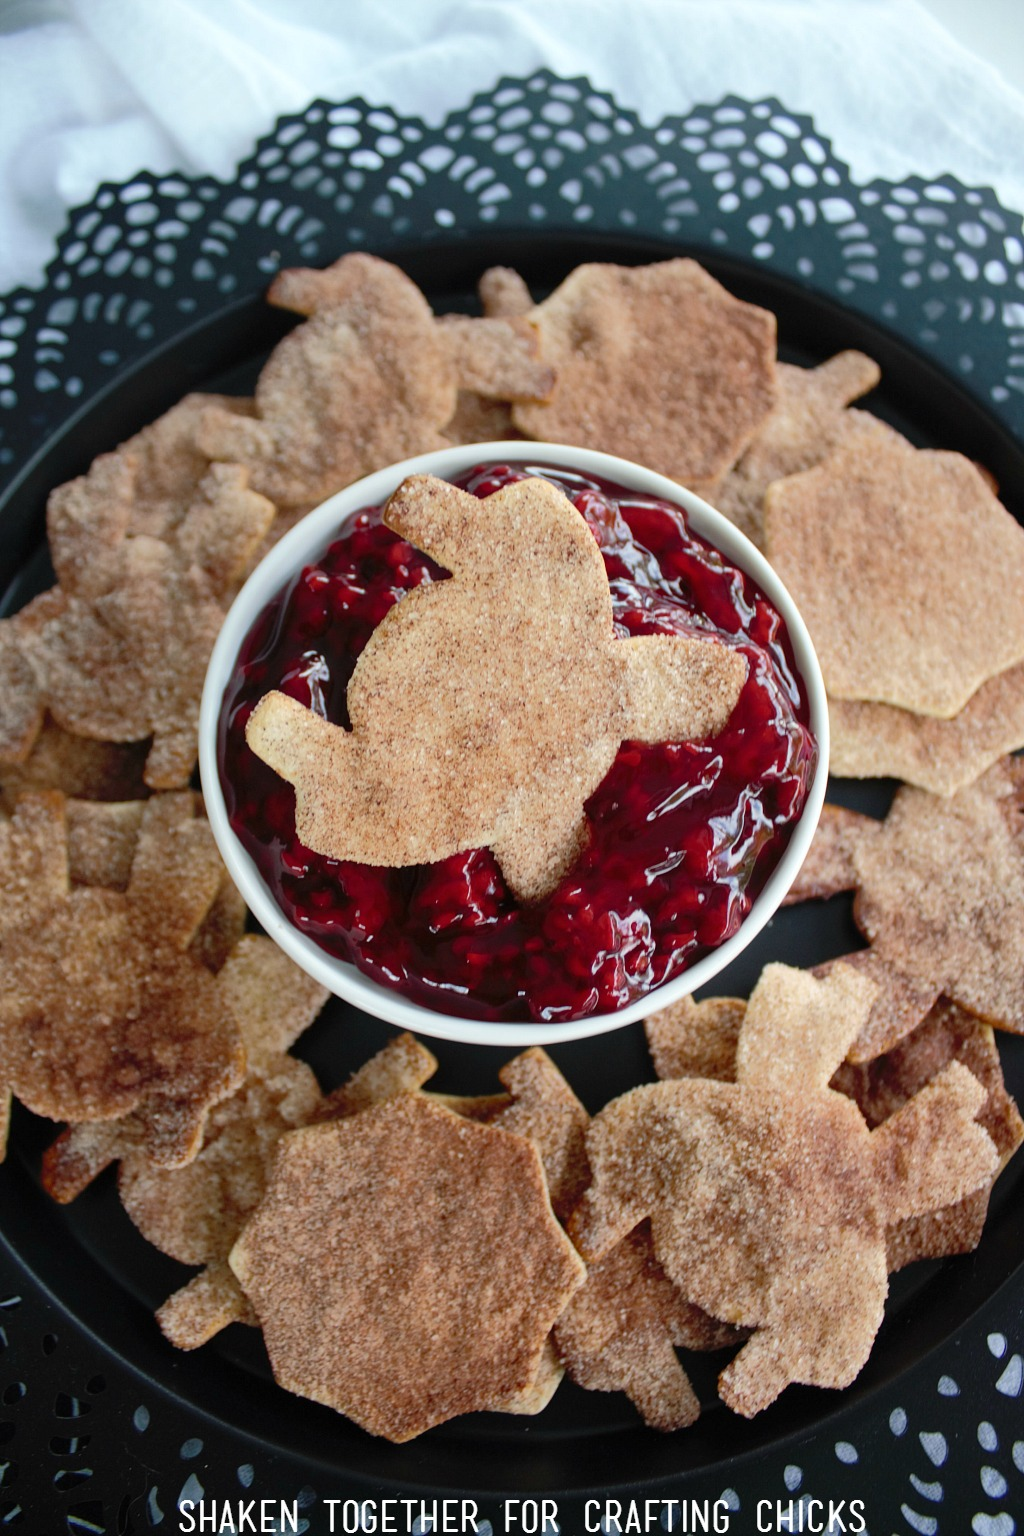 Cinnamon Sugar Spider Chips are delightfully dunkable - especially into raspberry 'guts'!